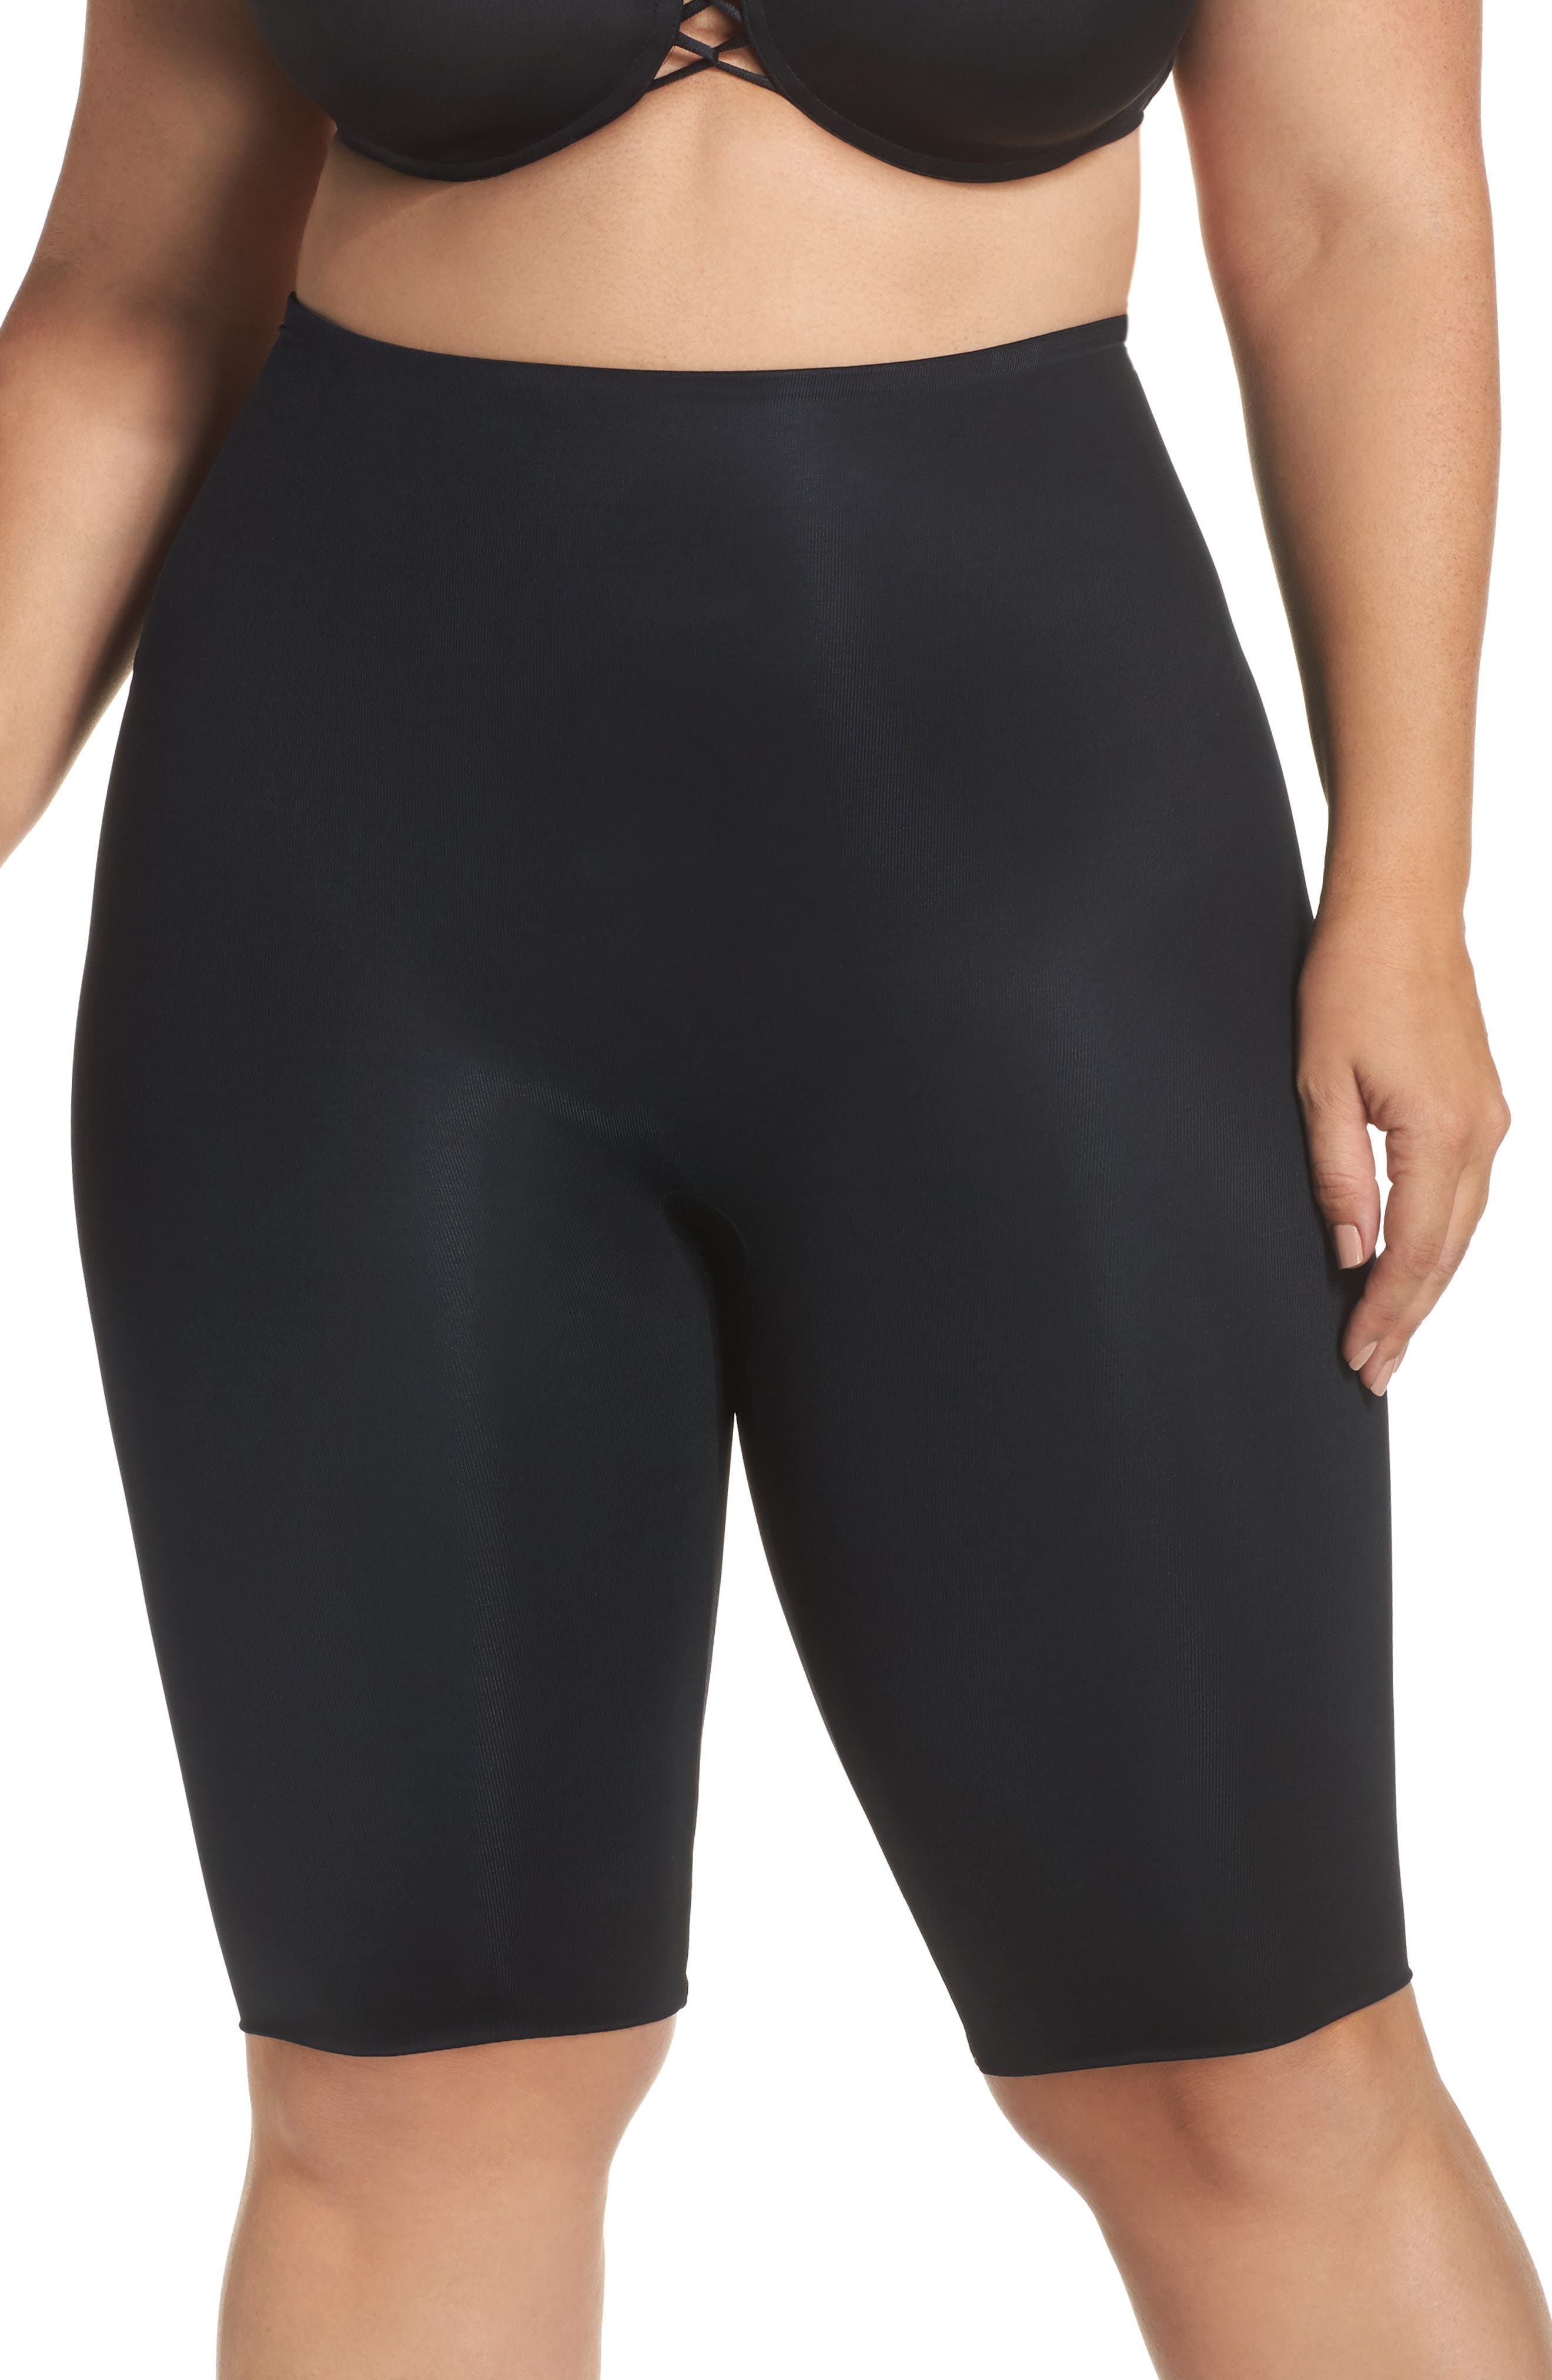 Power Conceal-Her Mid-Thigh Shorts,                             Main thumbnail 1, color,                             019